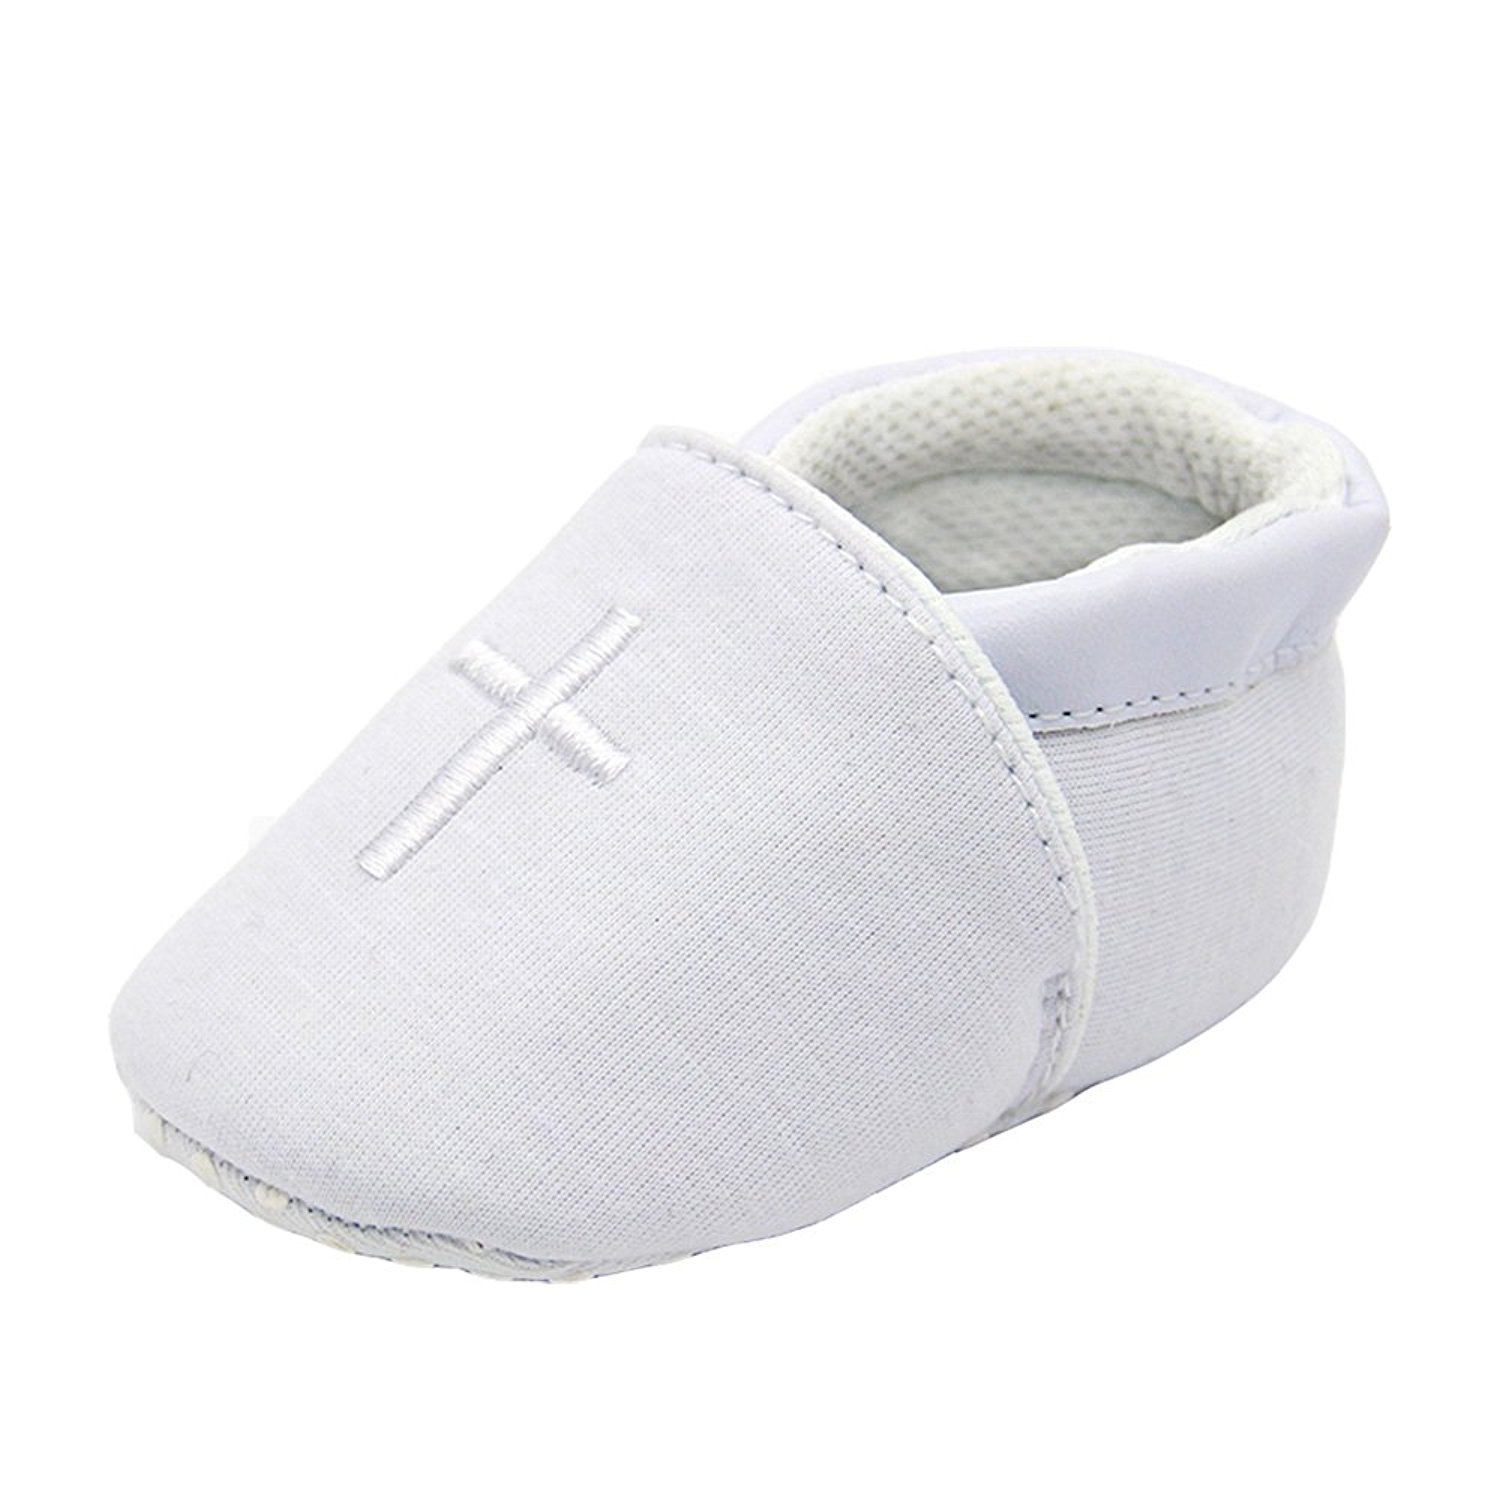 Aorme Christening Shoes with Cross Soft Sole Infant Prewalker Toddler Sneaker